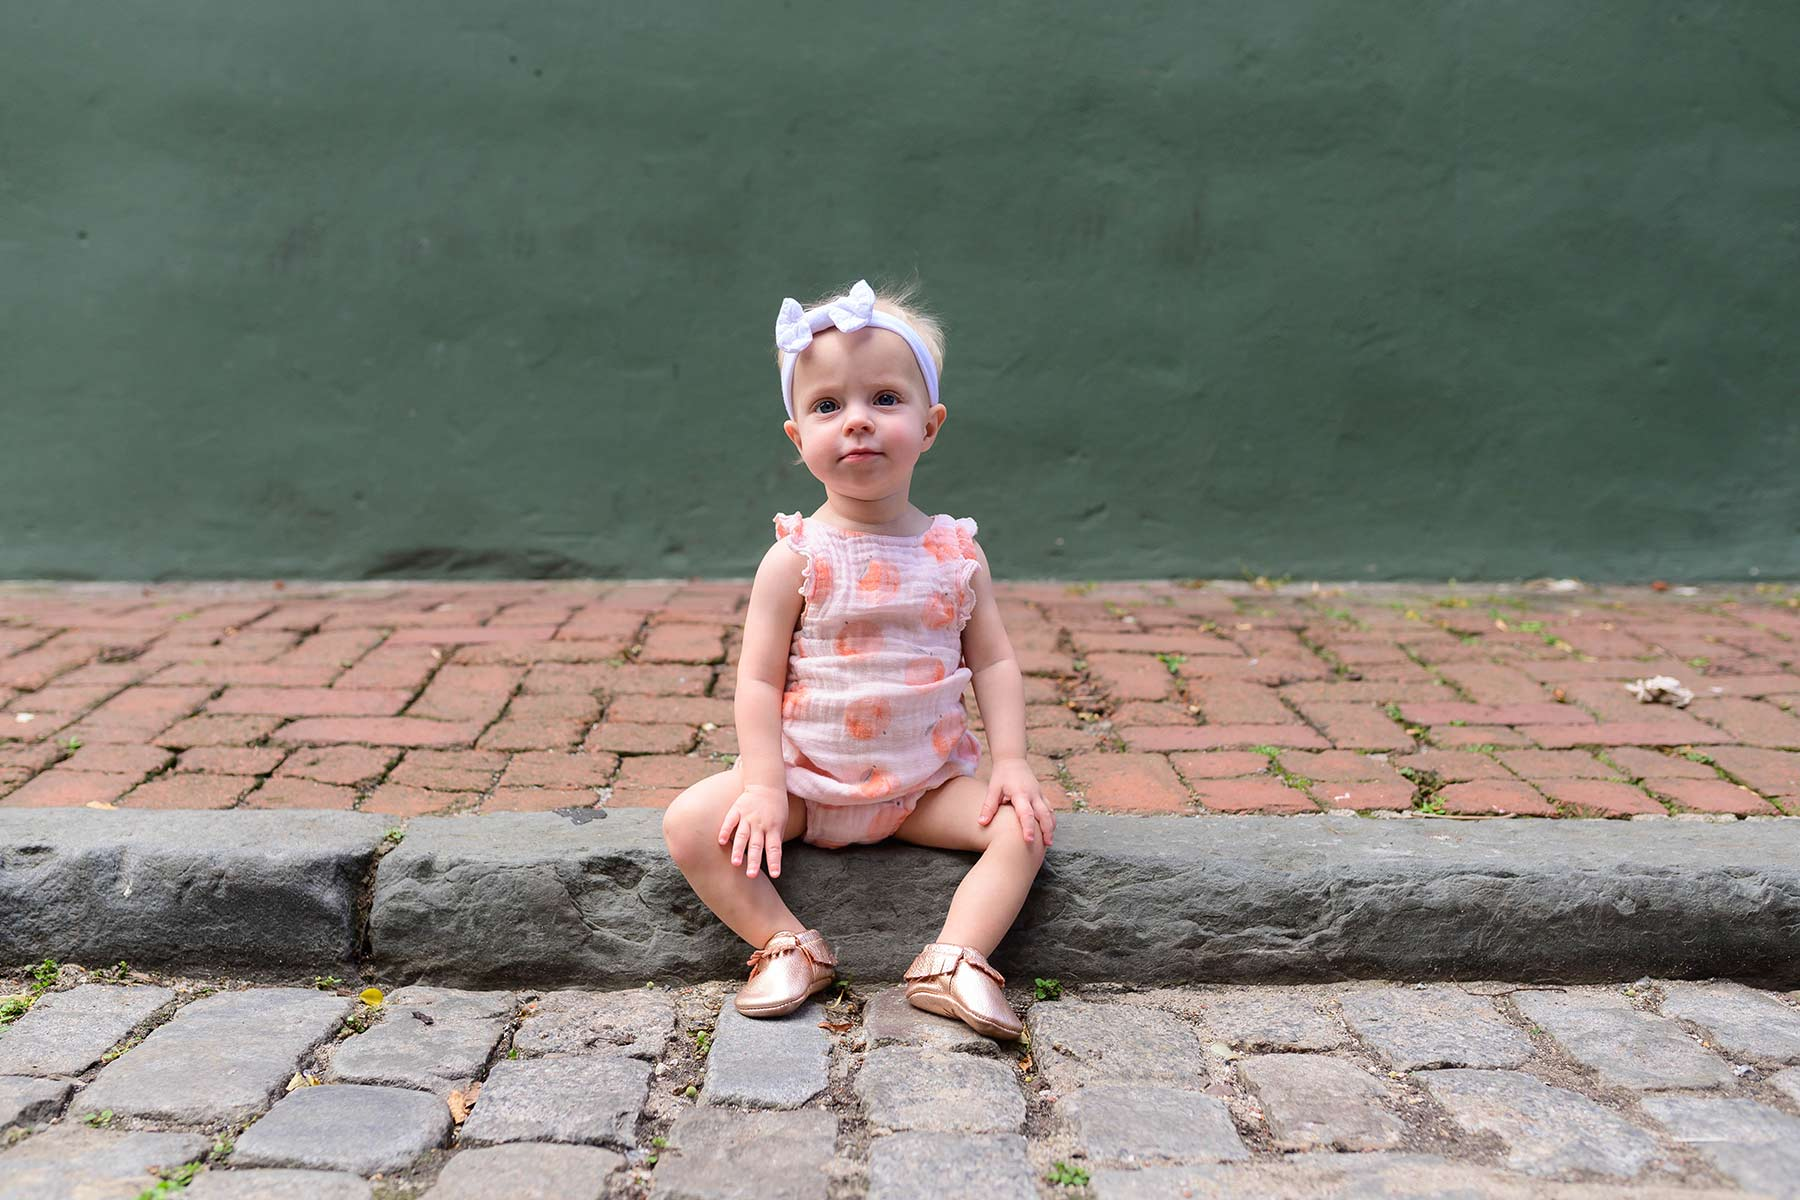 baby girl sits stoically on the street in Philadelphia